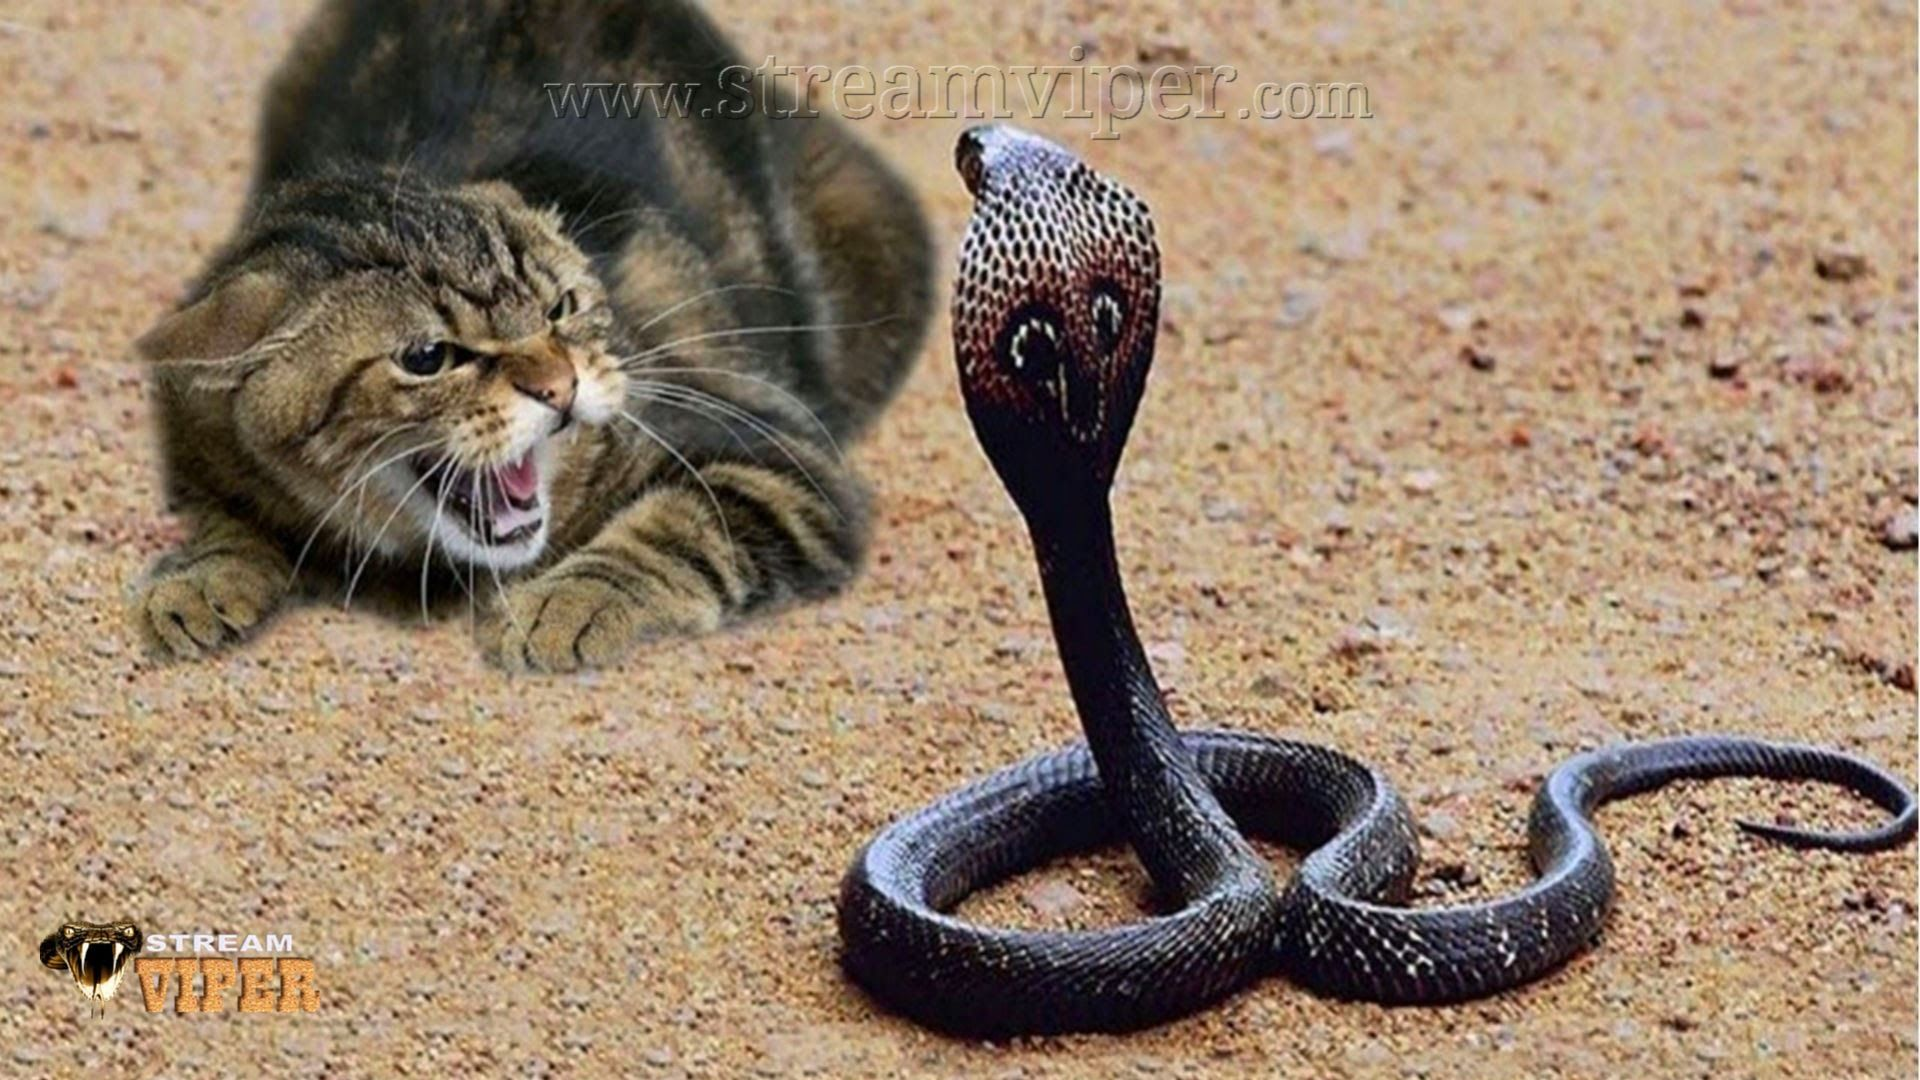 the snake attack Snake attack description: race to gobble up the fruit as fast as you can to become the biggest snake watch out for those other snakes they are out to devour you one touch and it's game over.